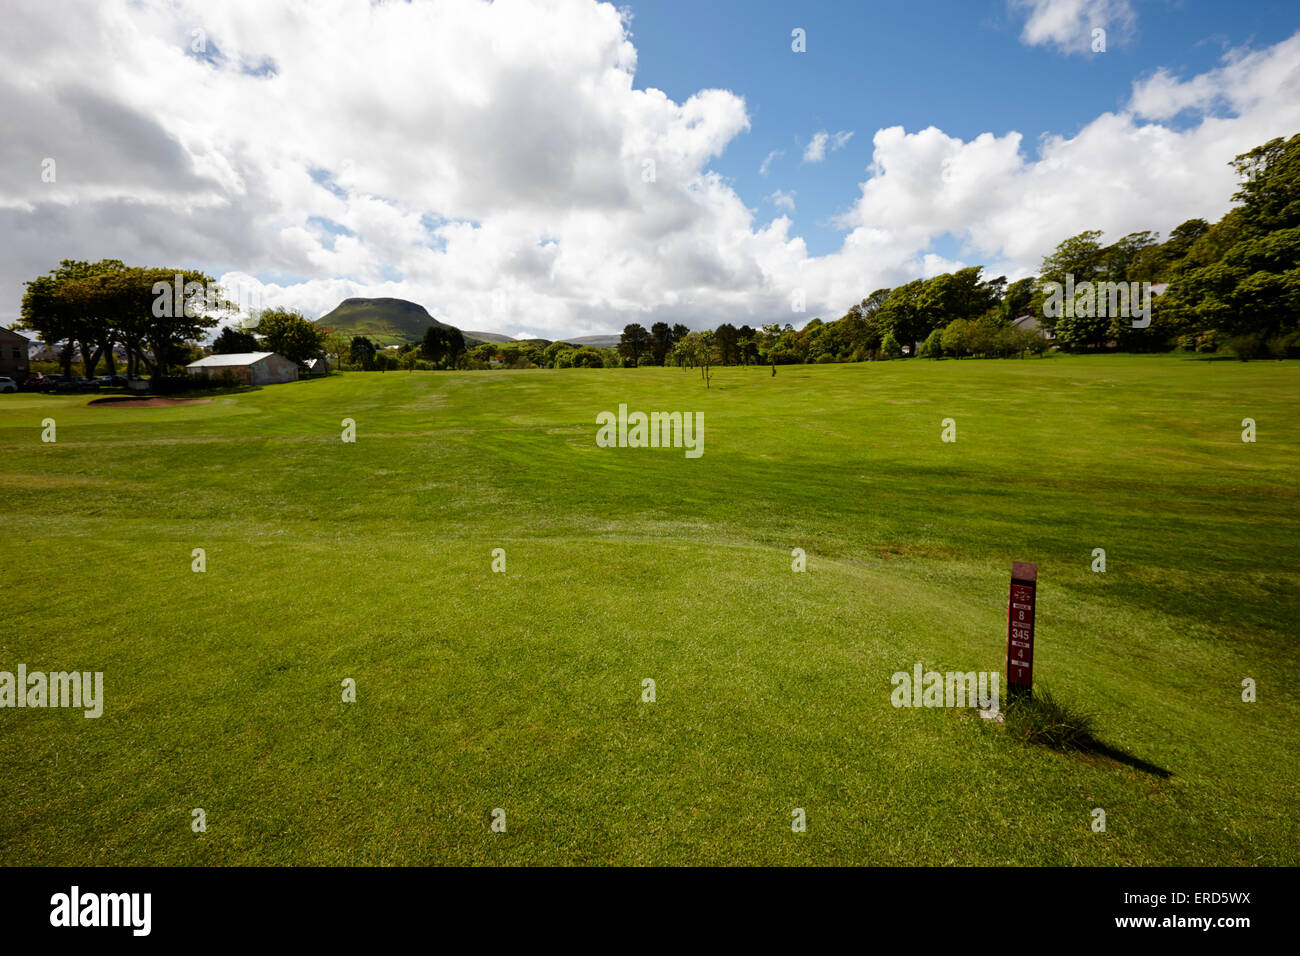 tee and fairway Cushendall golf course County Antrim Northern Ireland UK - Stock Image